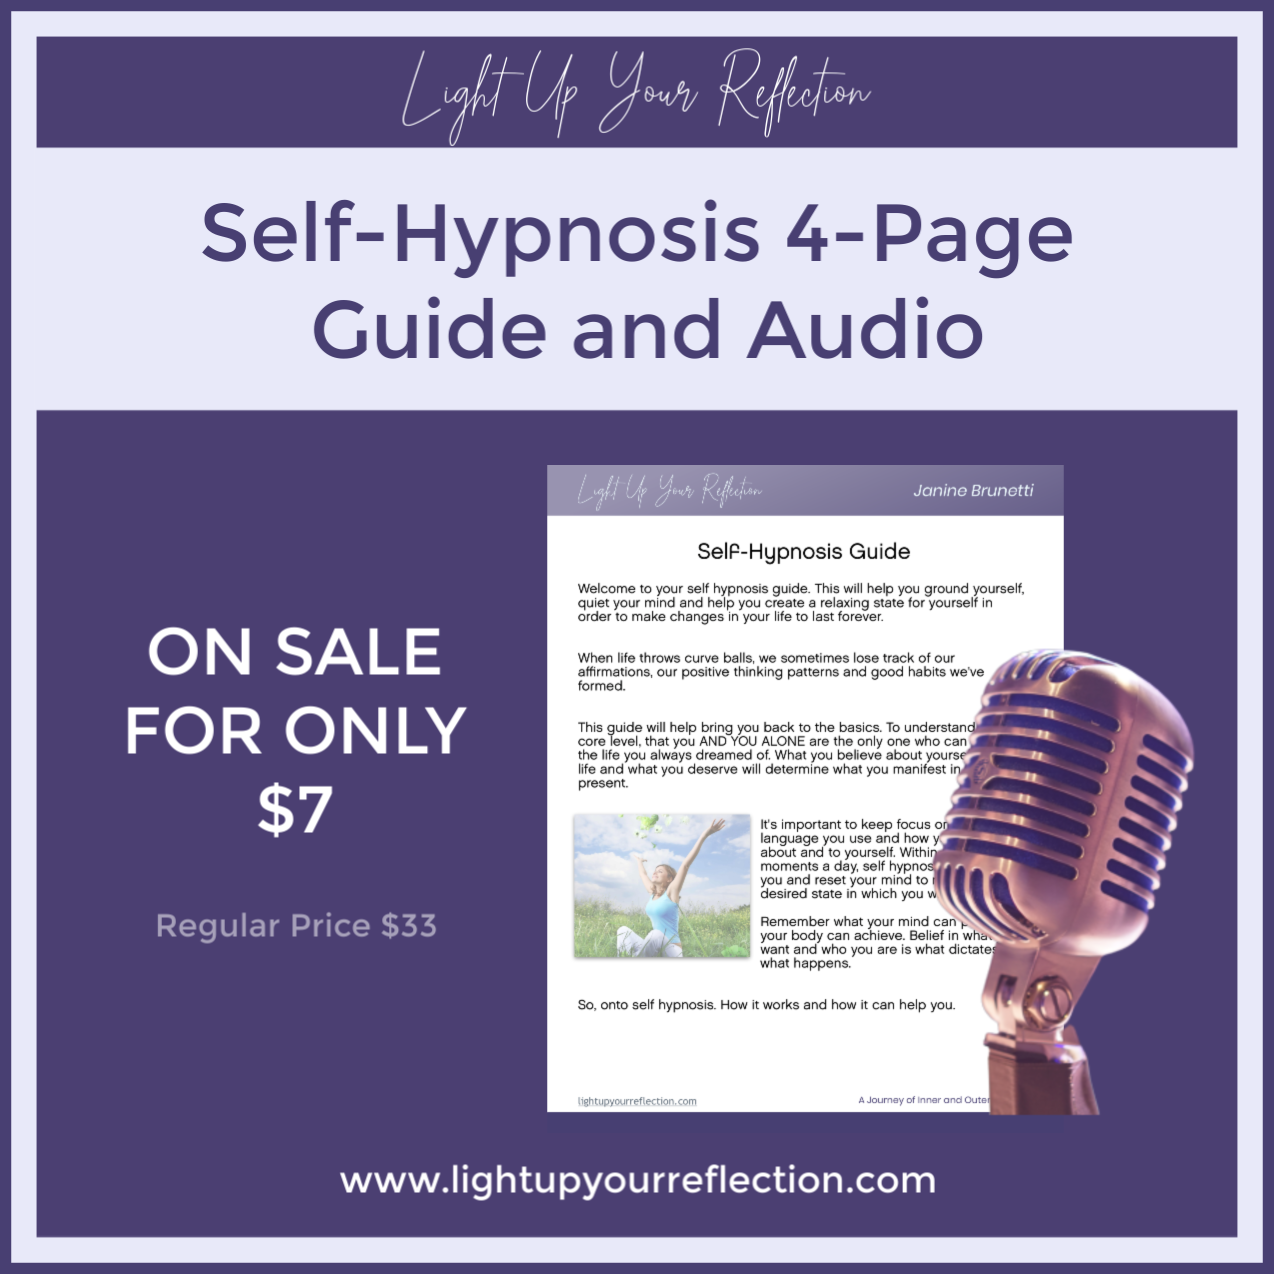 self-hypnosis guide and audio - social.png